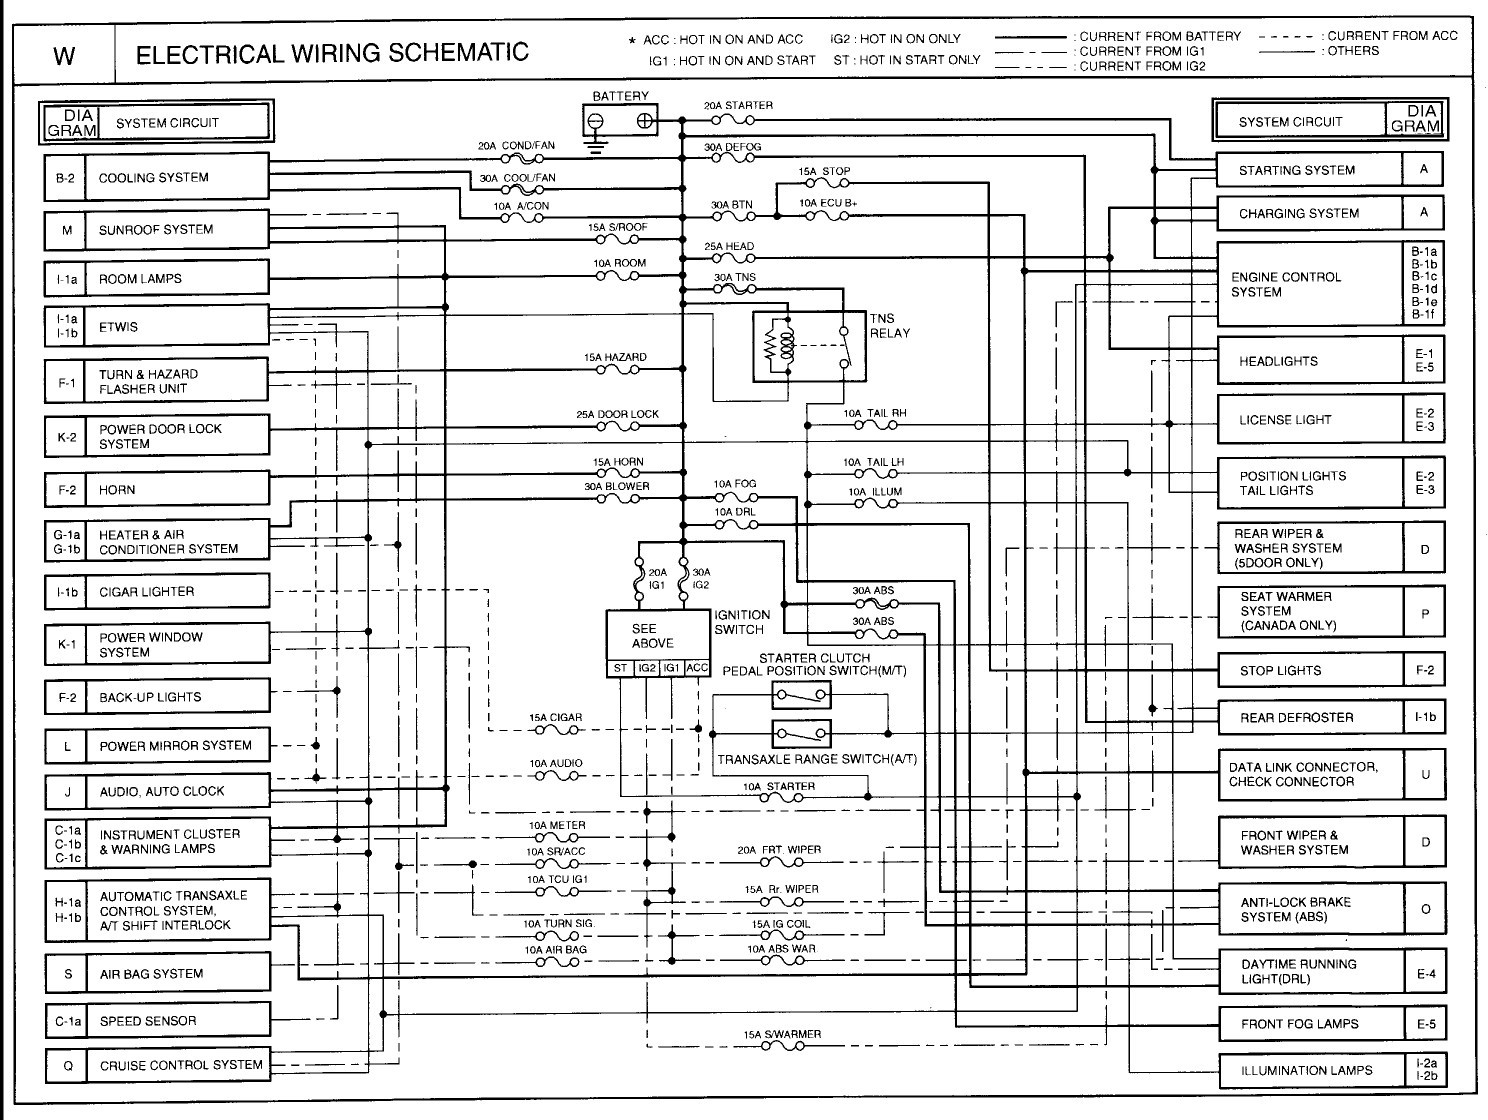 2004 kia spectra radio wiring diagram free wiring diagram. Black Bedroom Furniture Sets. Home Design Ideas